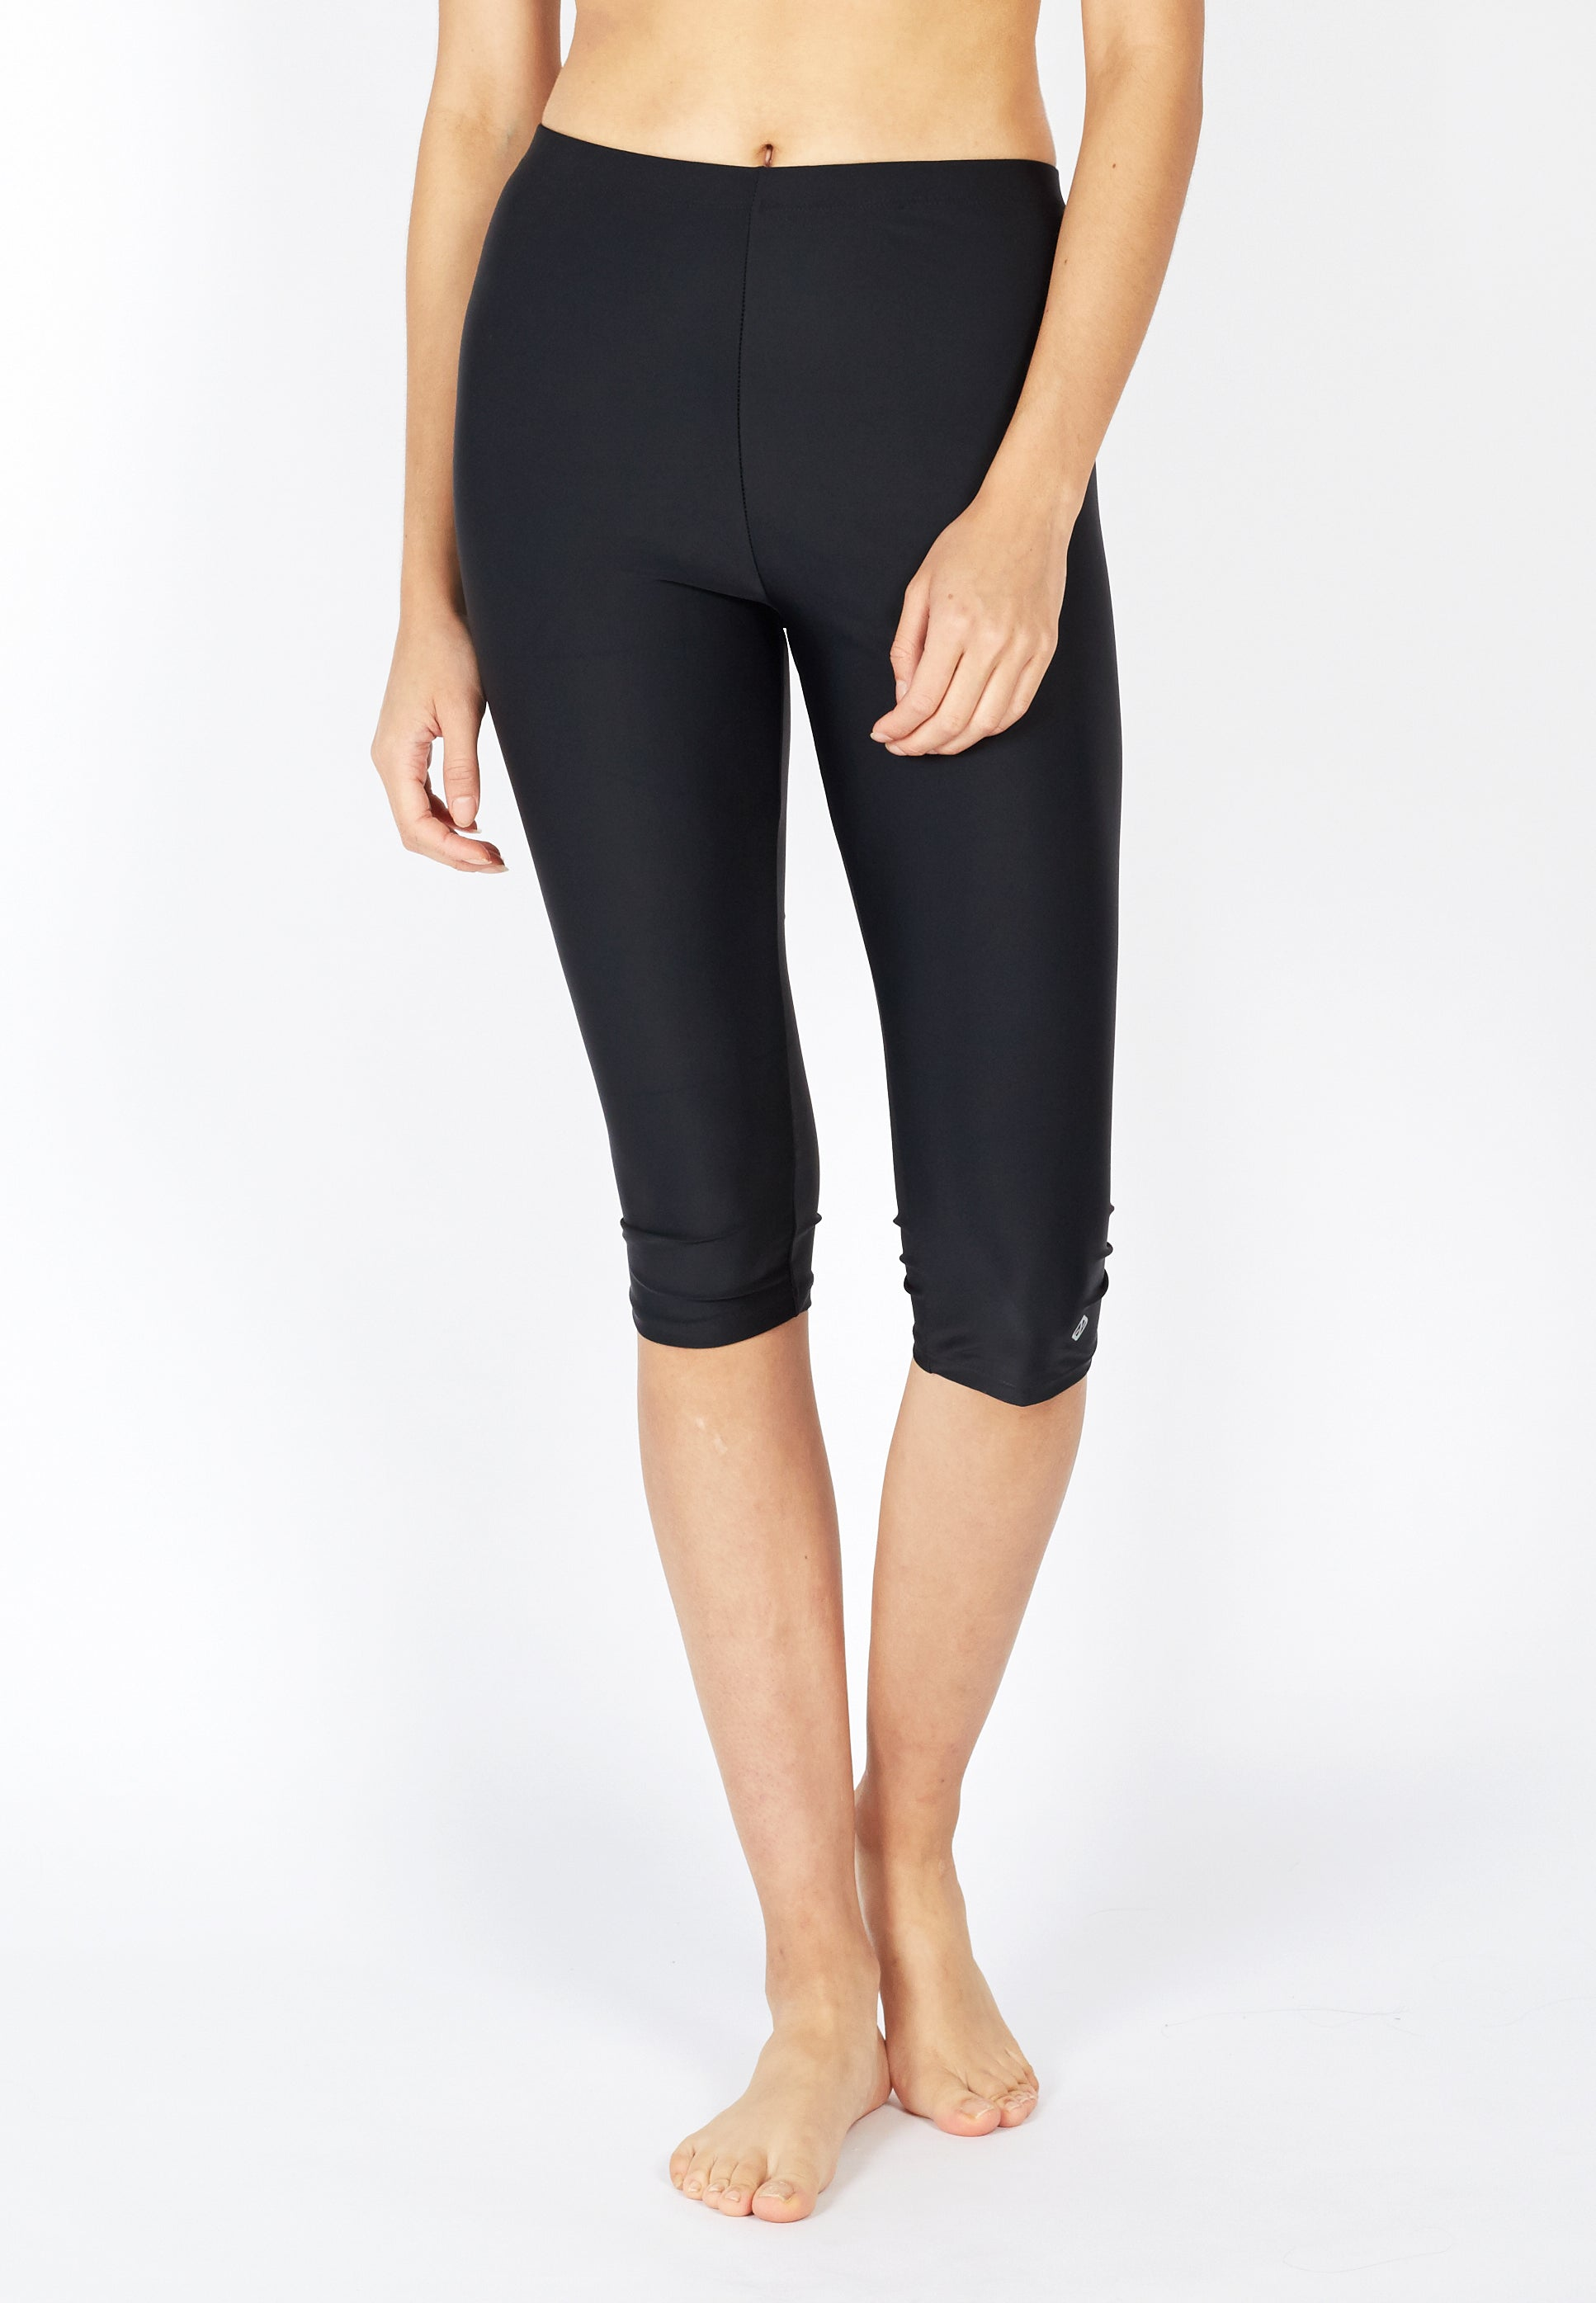 FUNFIT UPF50+ Basic Capri Pants (Black) | S - 5XL